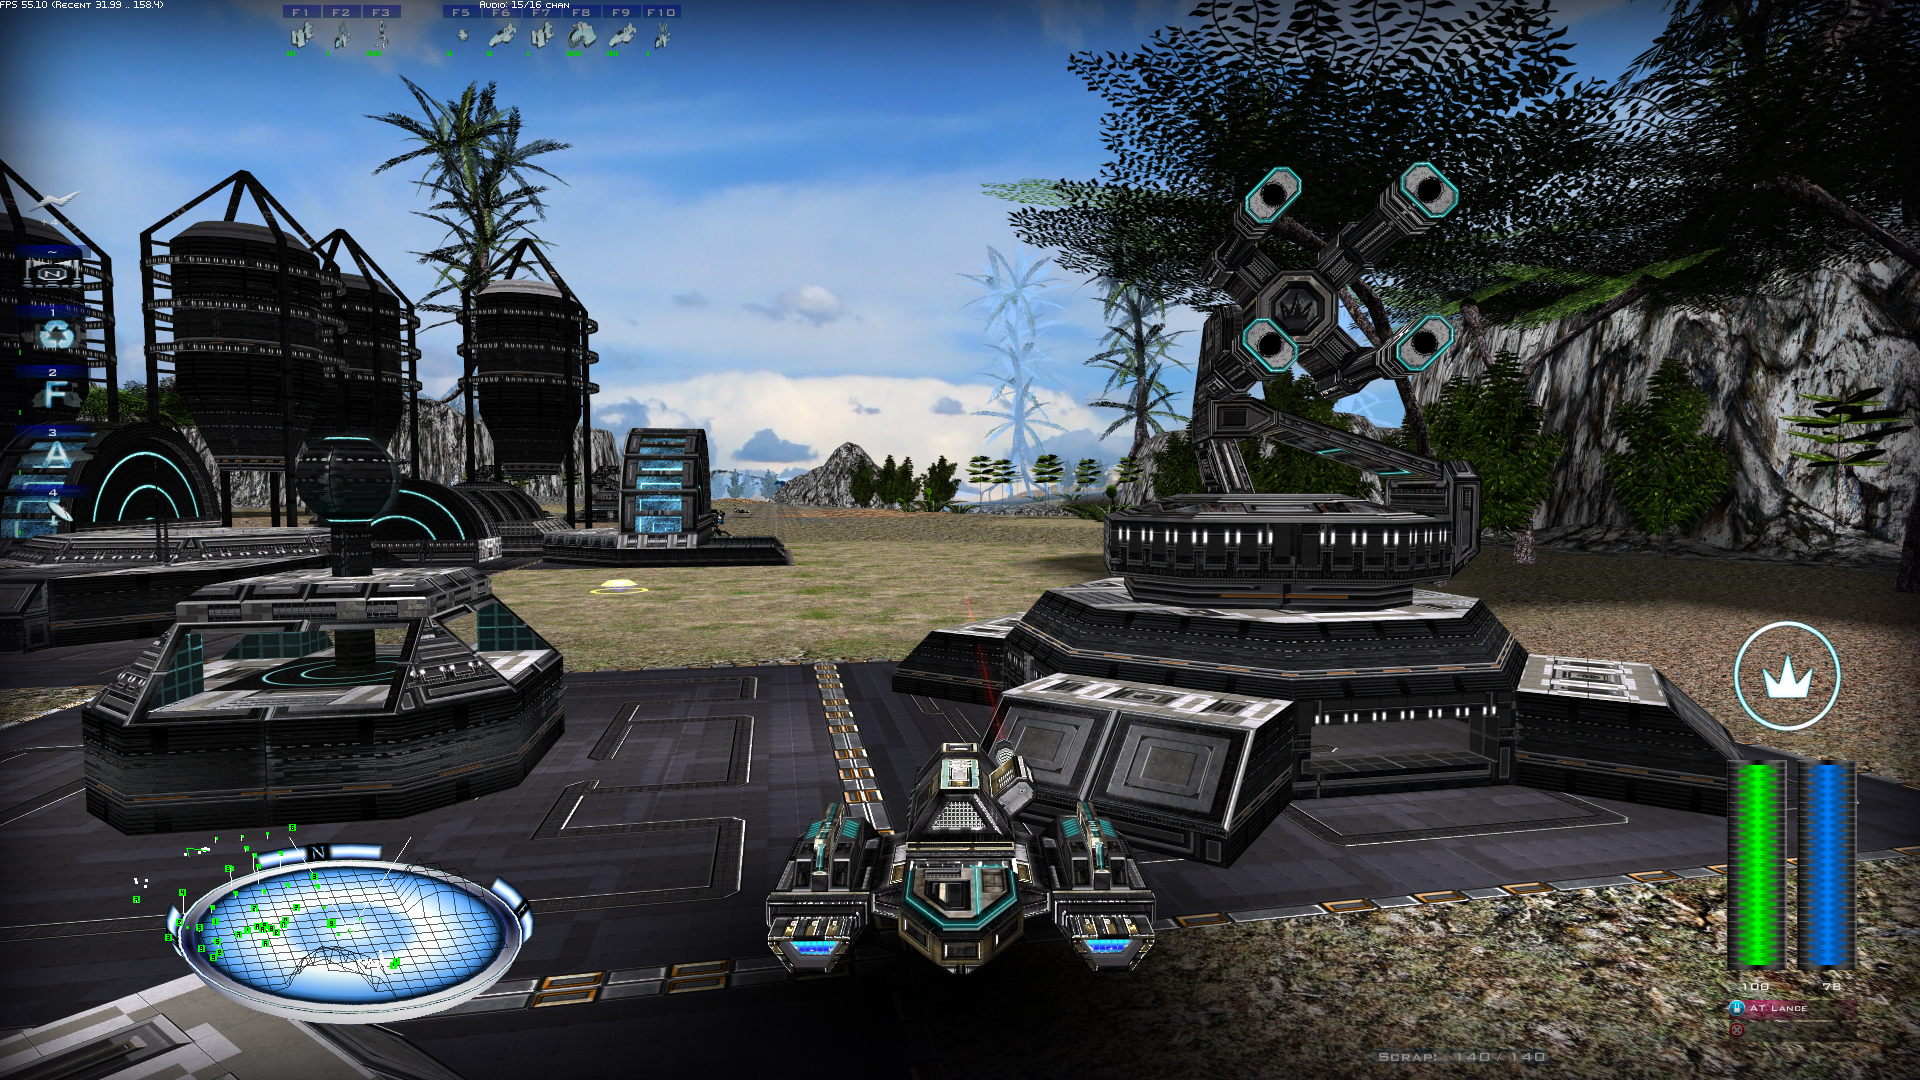 Defence battery scar tank image qf2 essence to a for Battlezone 2